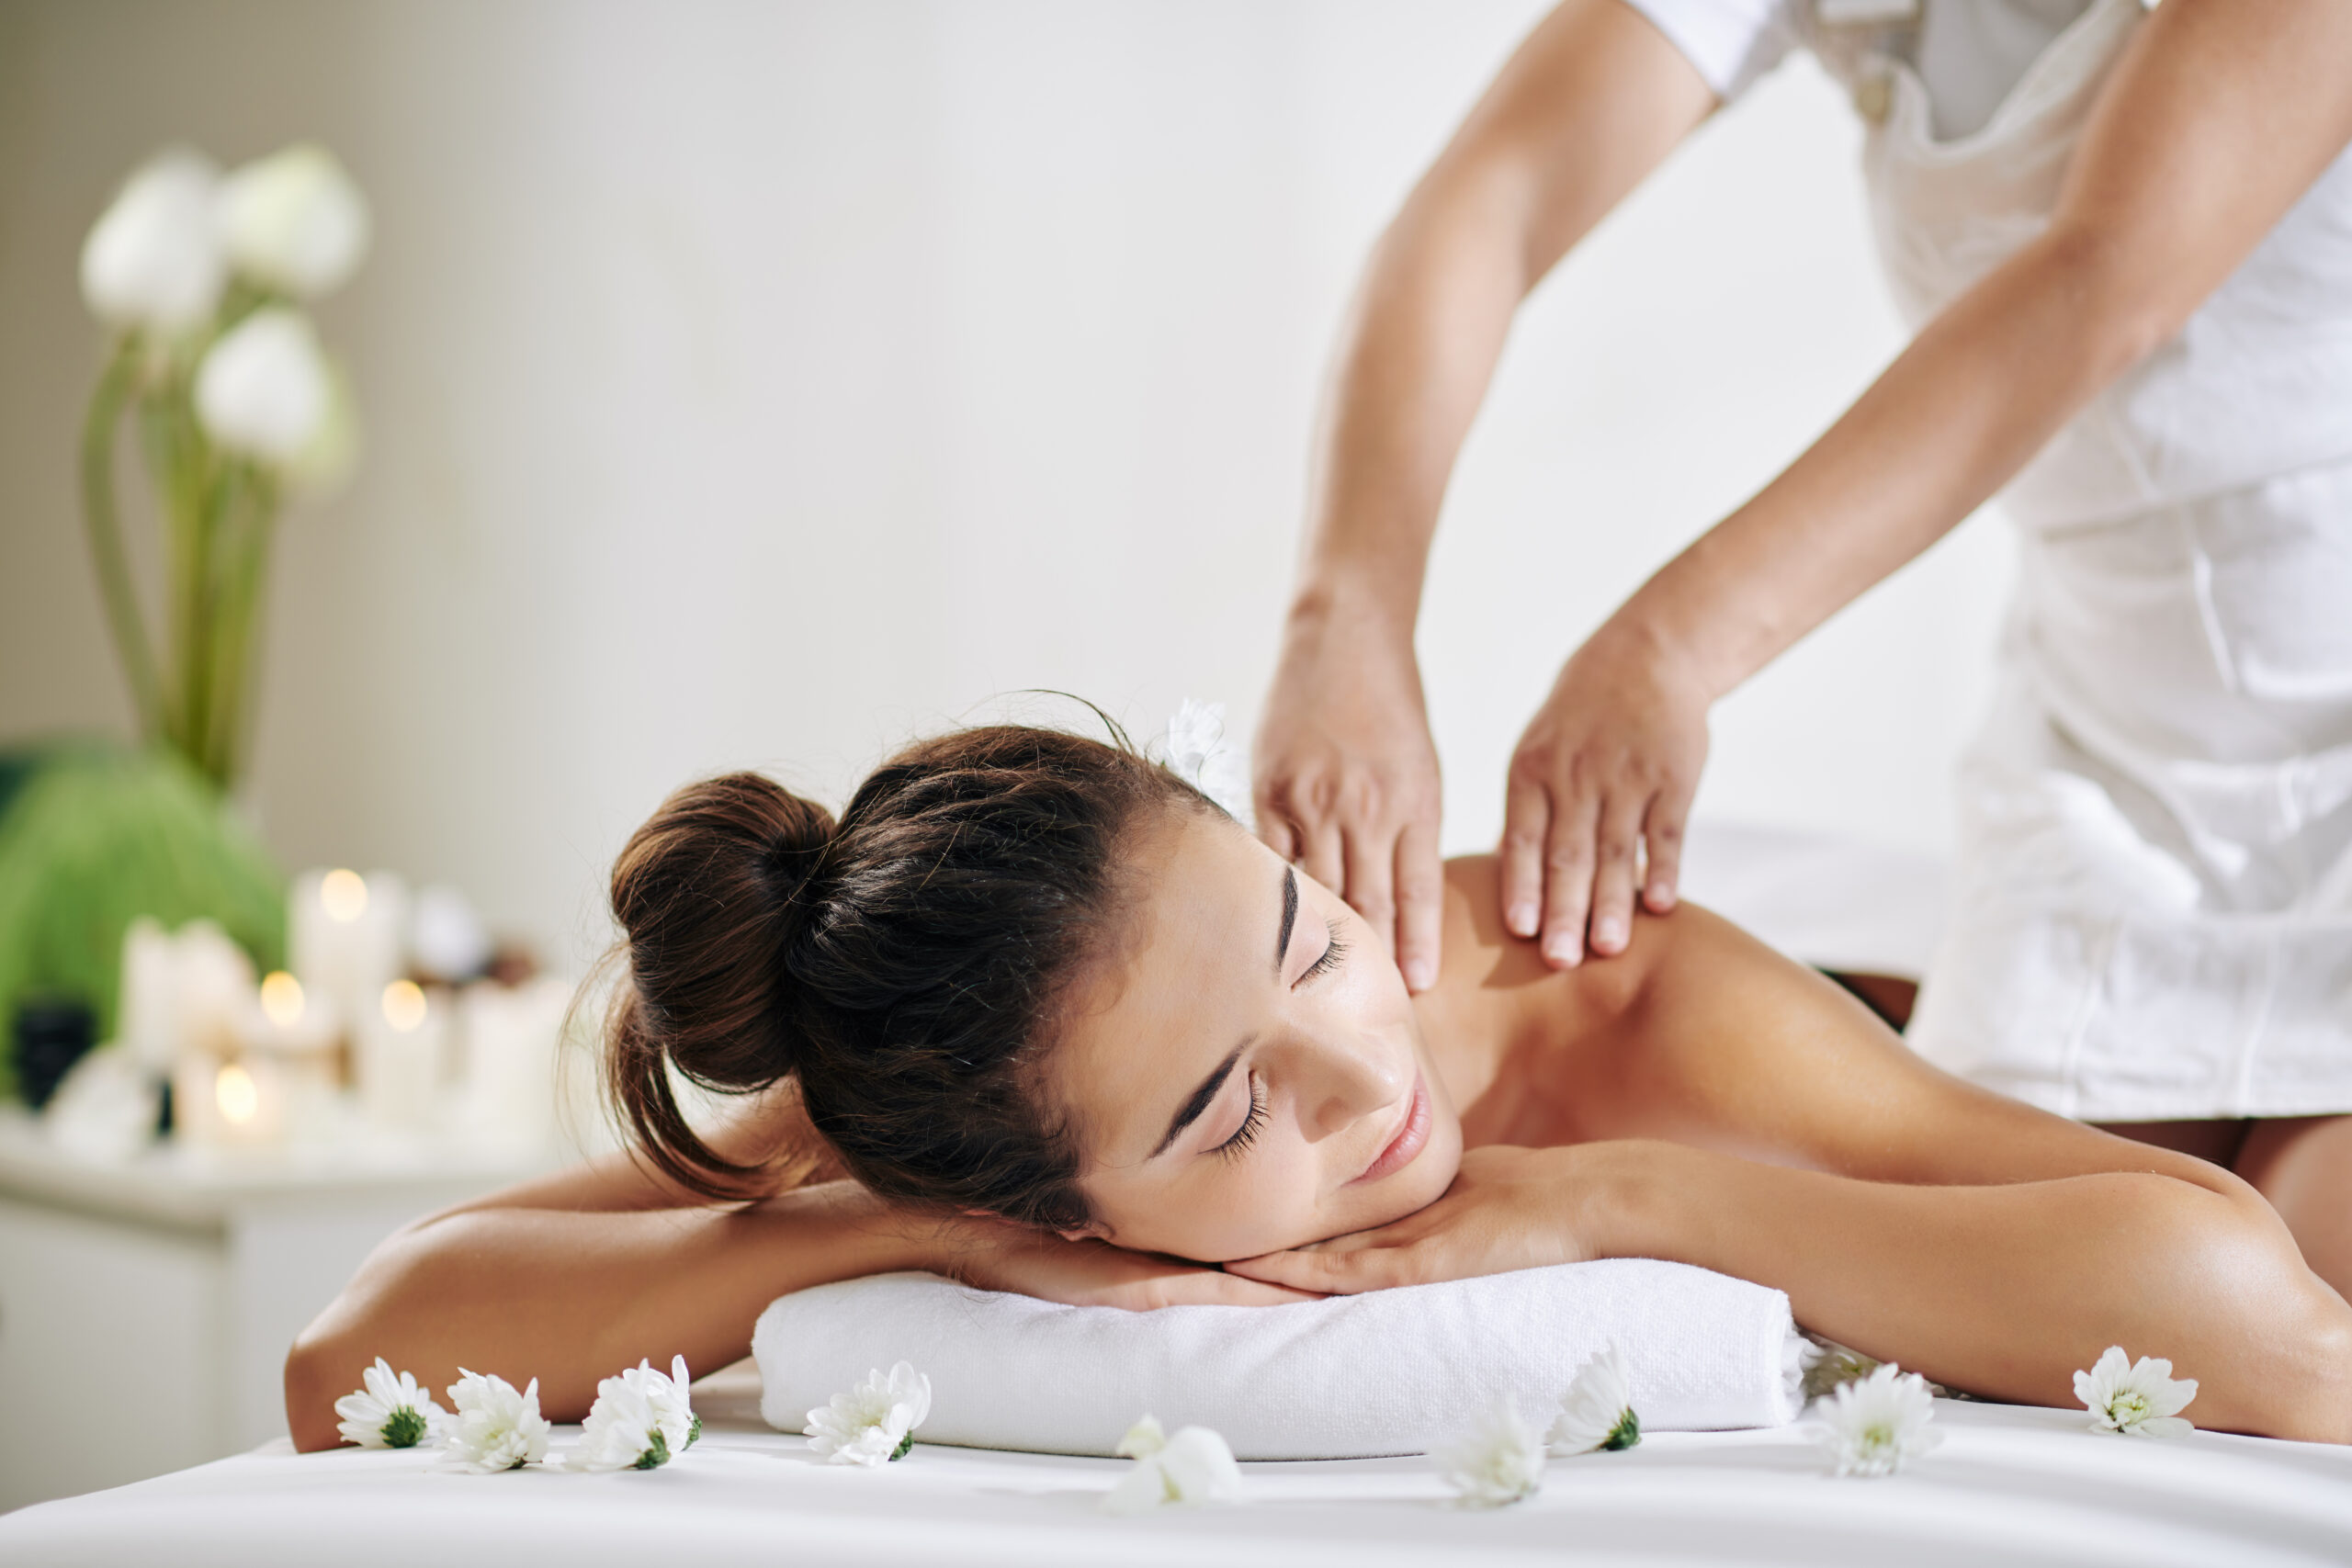 3 PROVEN HEALTH BENEFITS OF MASSAGE THERAPY